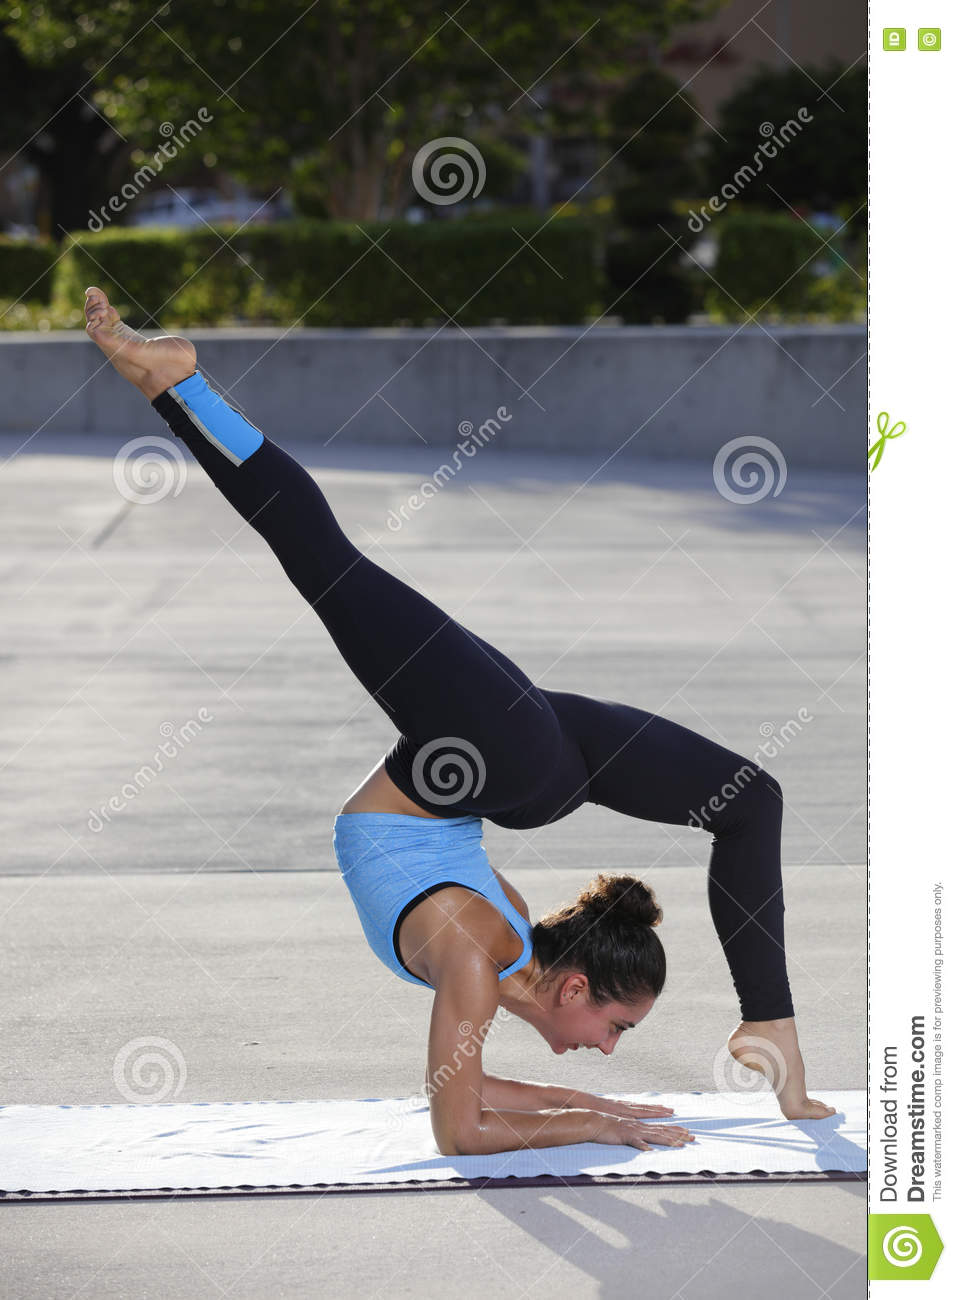 Amazing yoga poses stock image. Image of healthy, pose - 33